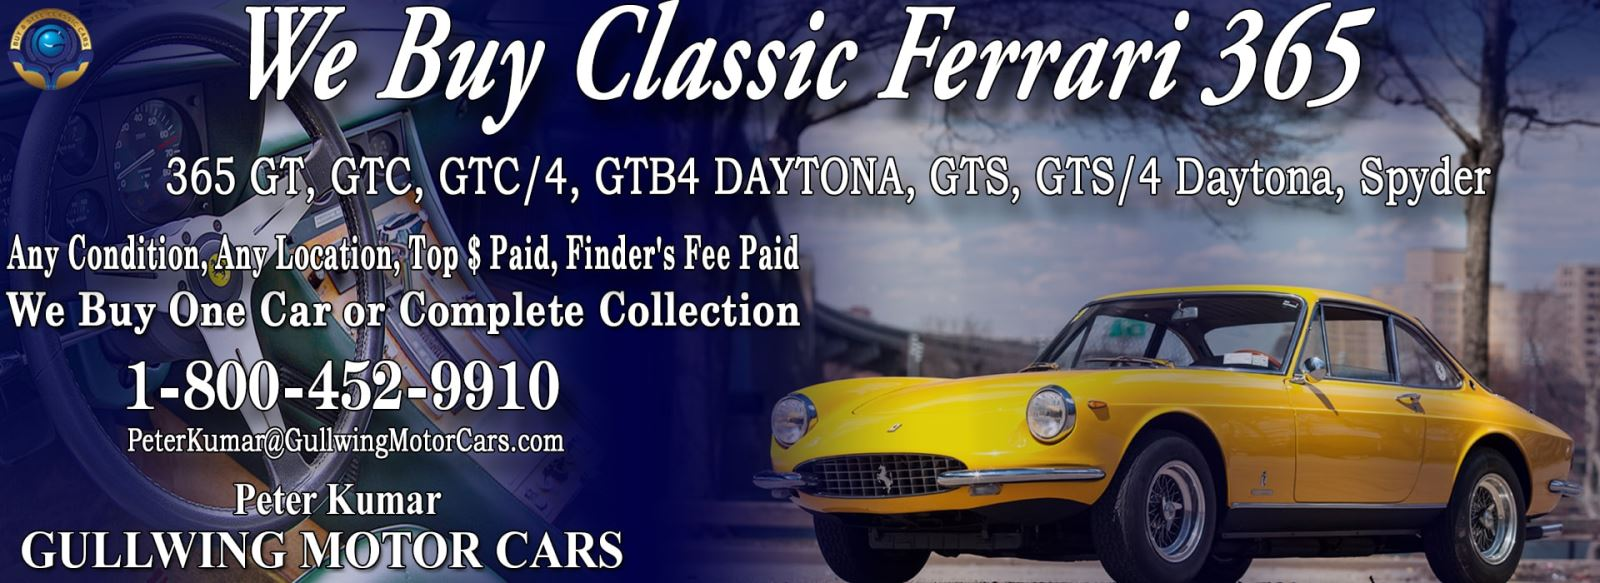 Classic Ferrari 365 GT 2+2 for sale, we buy vintage Ferrari 365 GT. Call Peter Kumar. Gullwing Motor